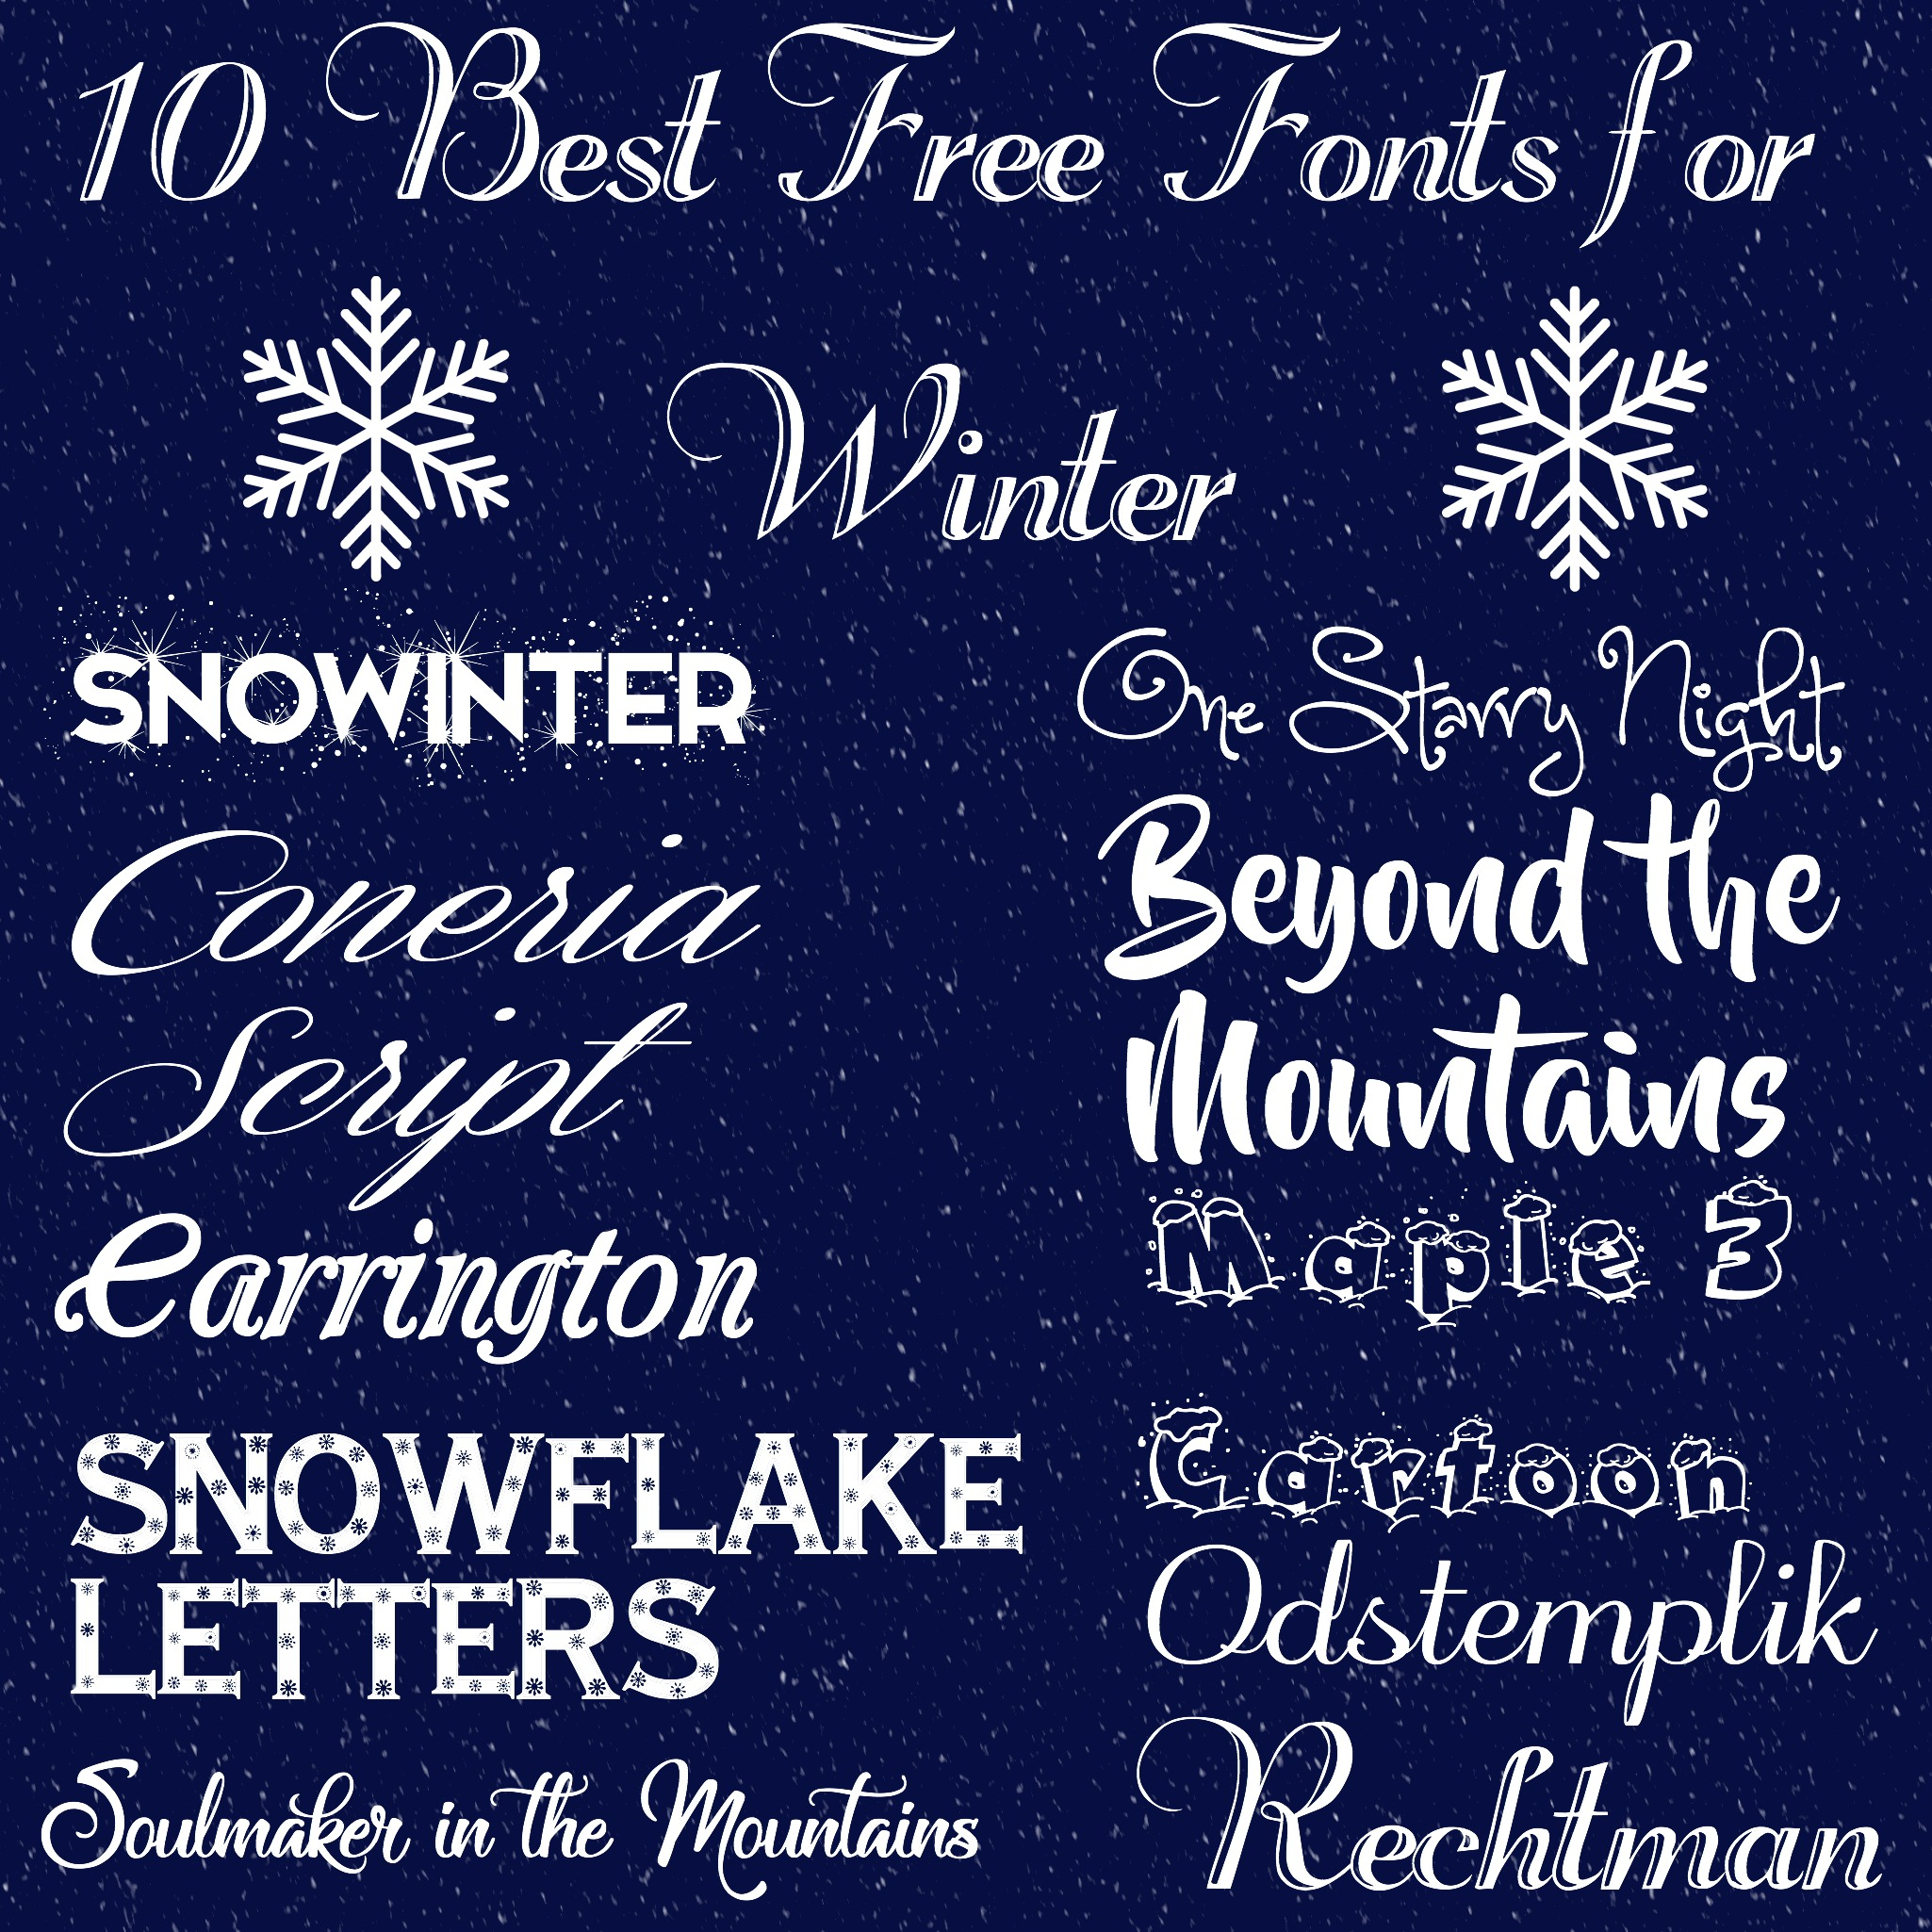 10 Best Free Fonts for Winter